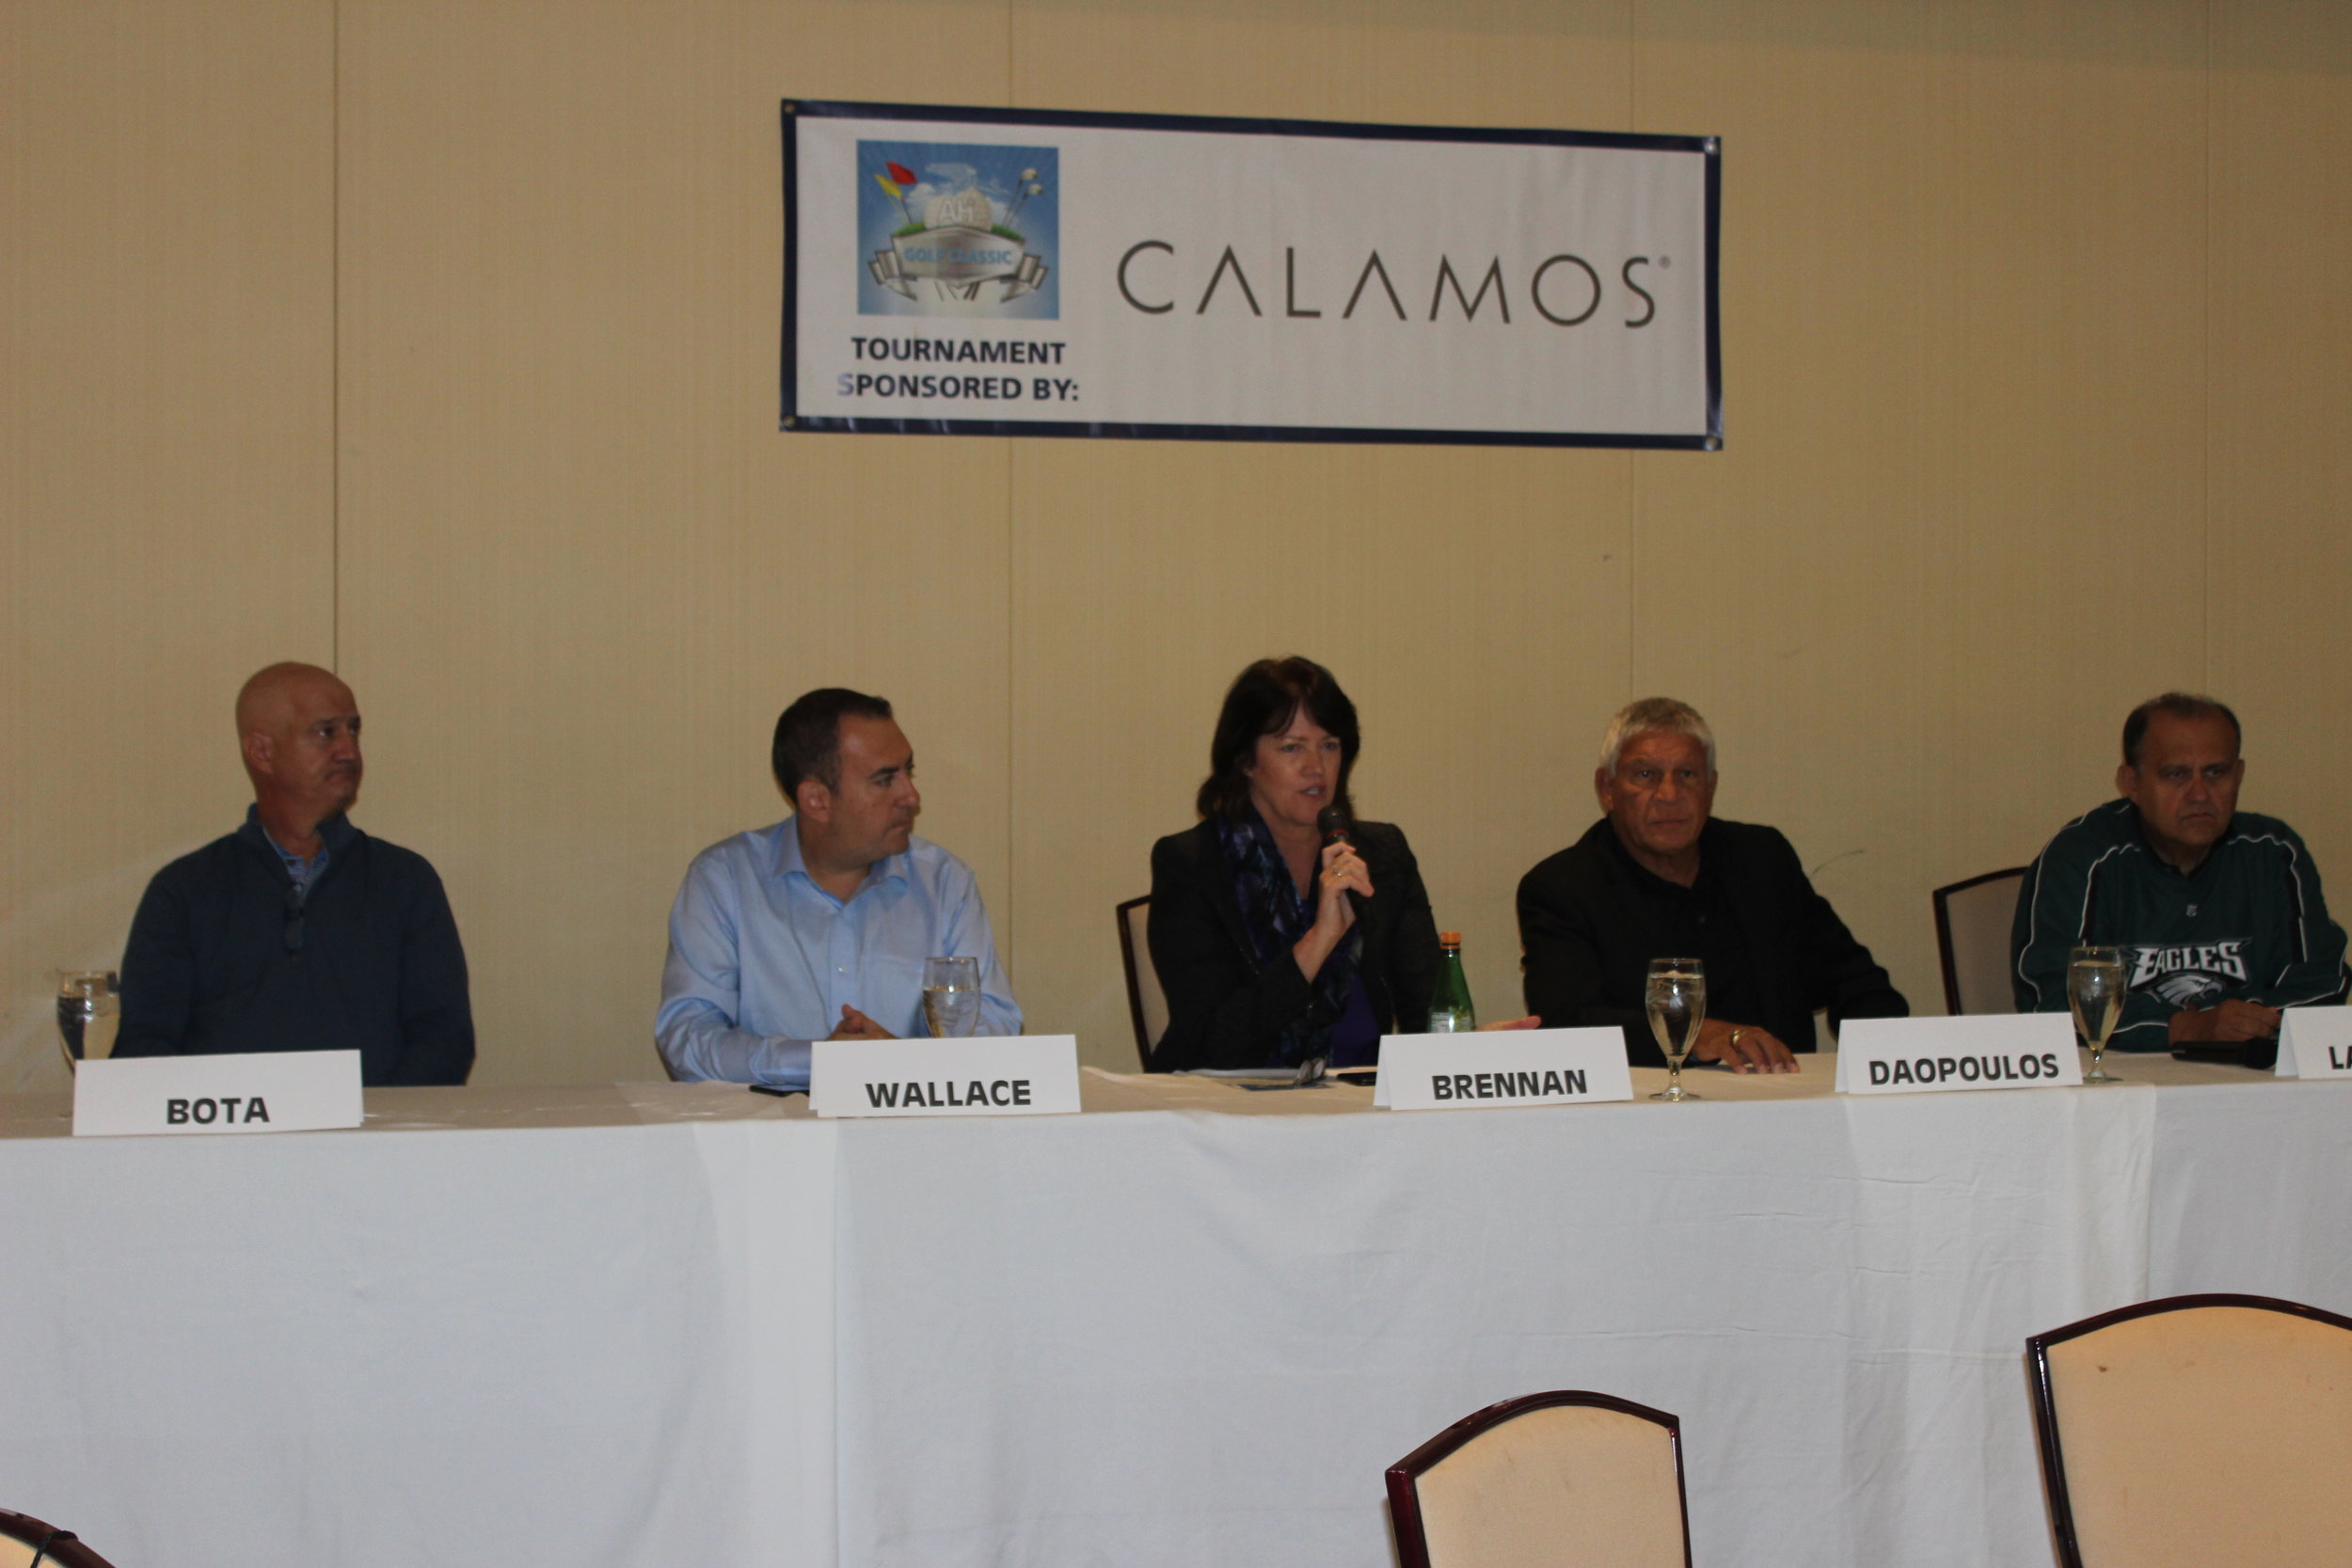 (L-R) Golf Classic Chairman Peter Bota; George Wallace, sports director,  WTOP  Radio; Christine Brennan, journalist,  USA Today;  Jim Daopoulos,  ESPN  rules analyst and former NFL official; Nick Larigakis, AHI President.